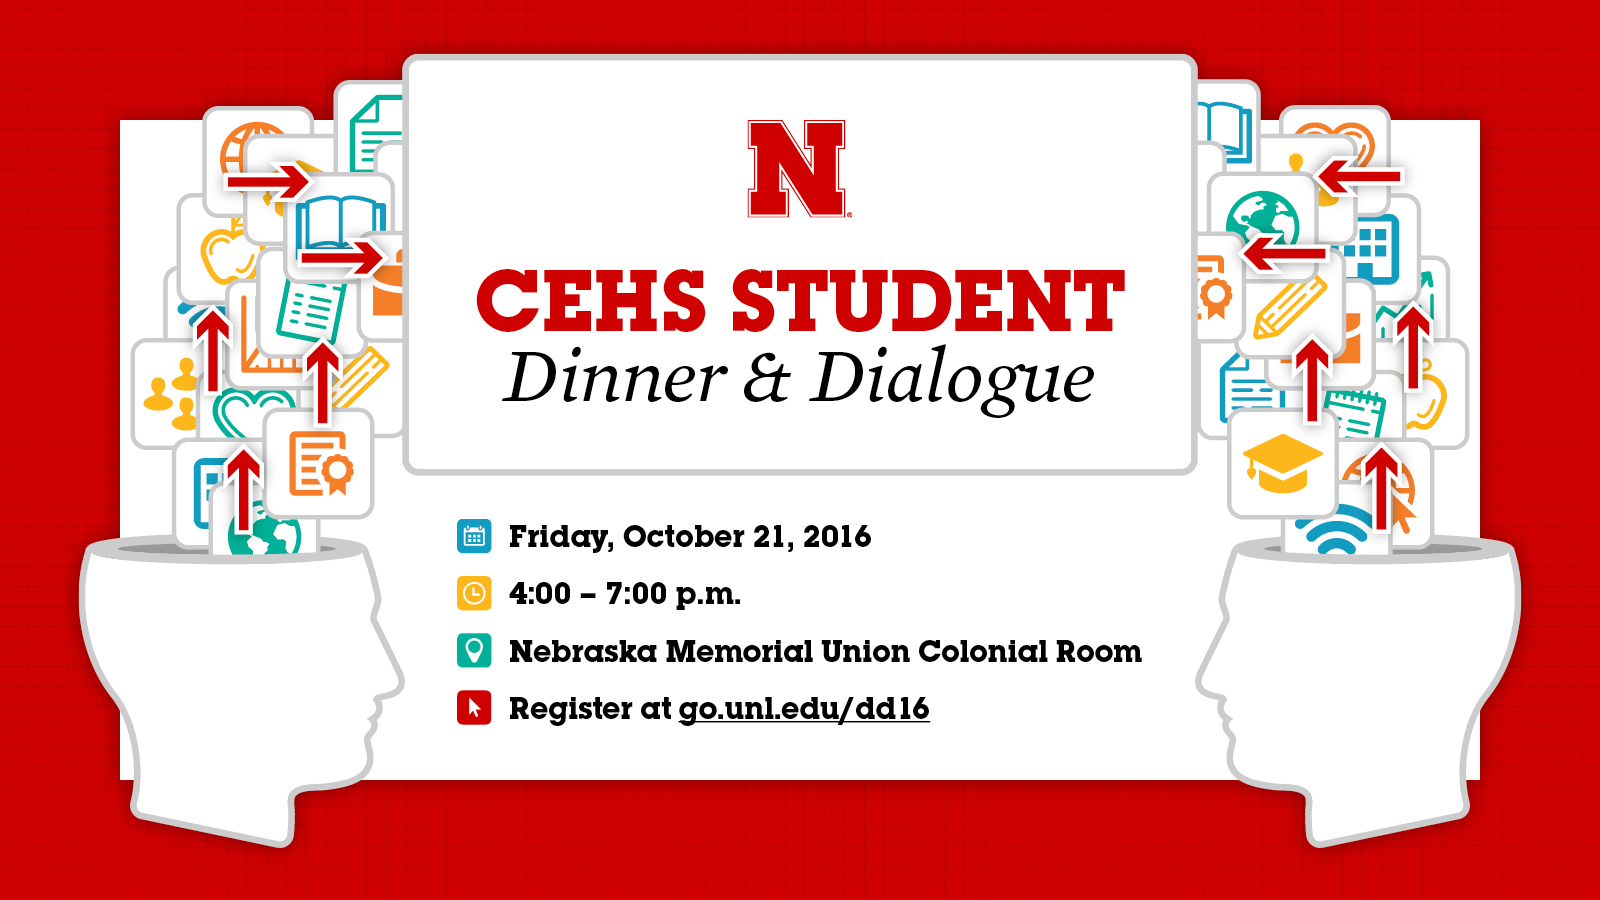 CEHS Dinner & Dialogue graphic